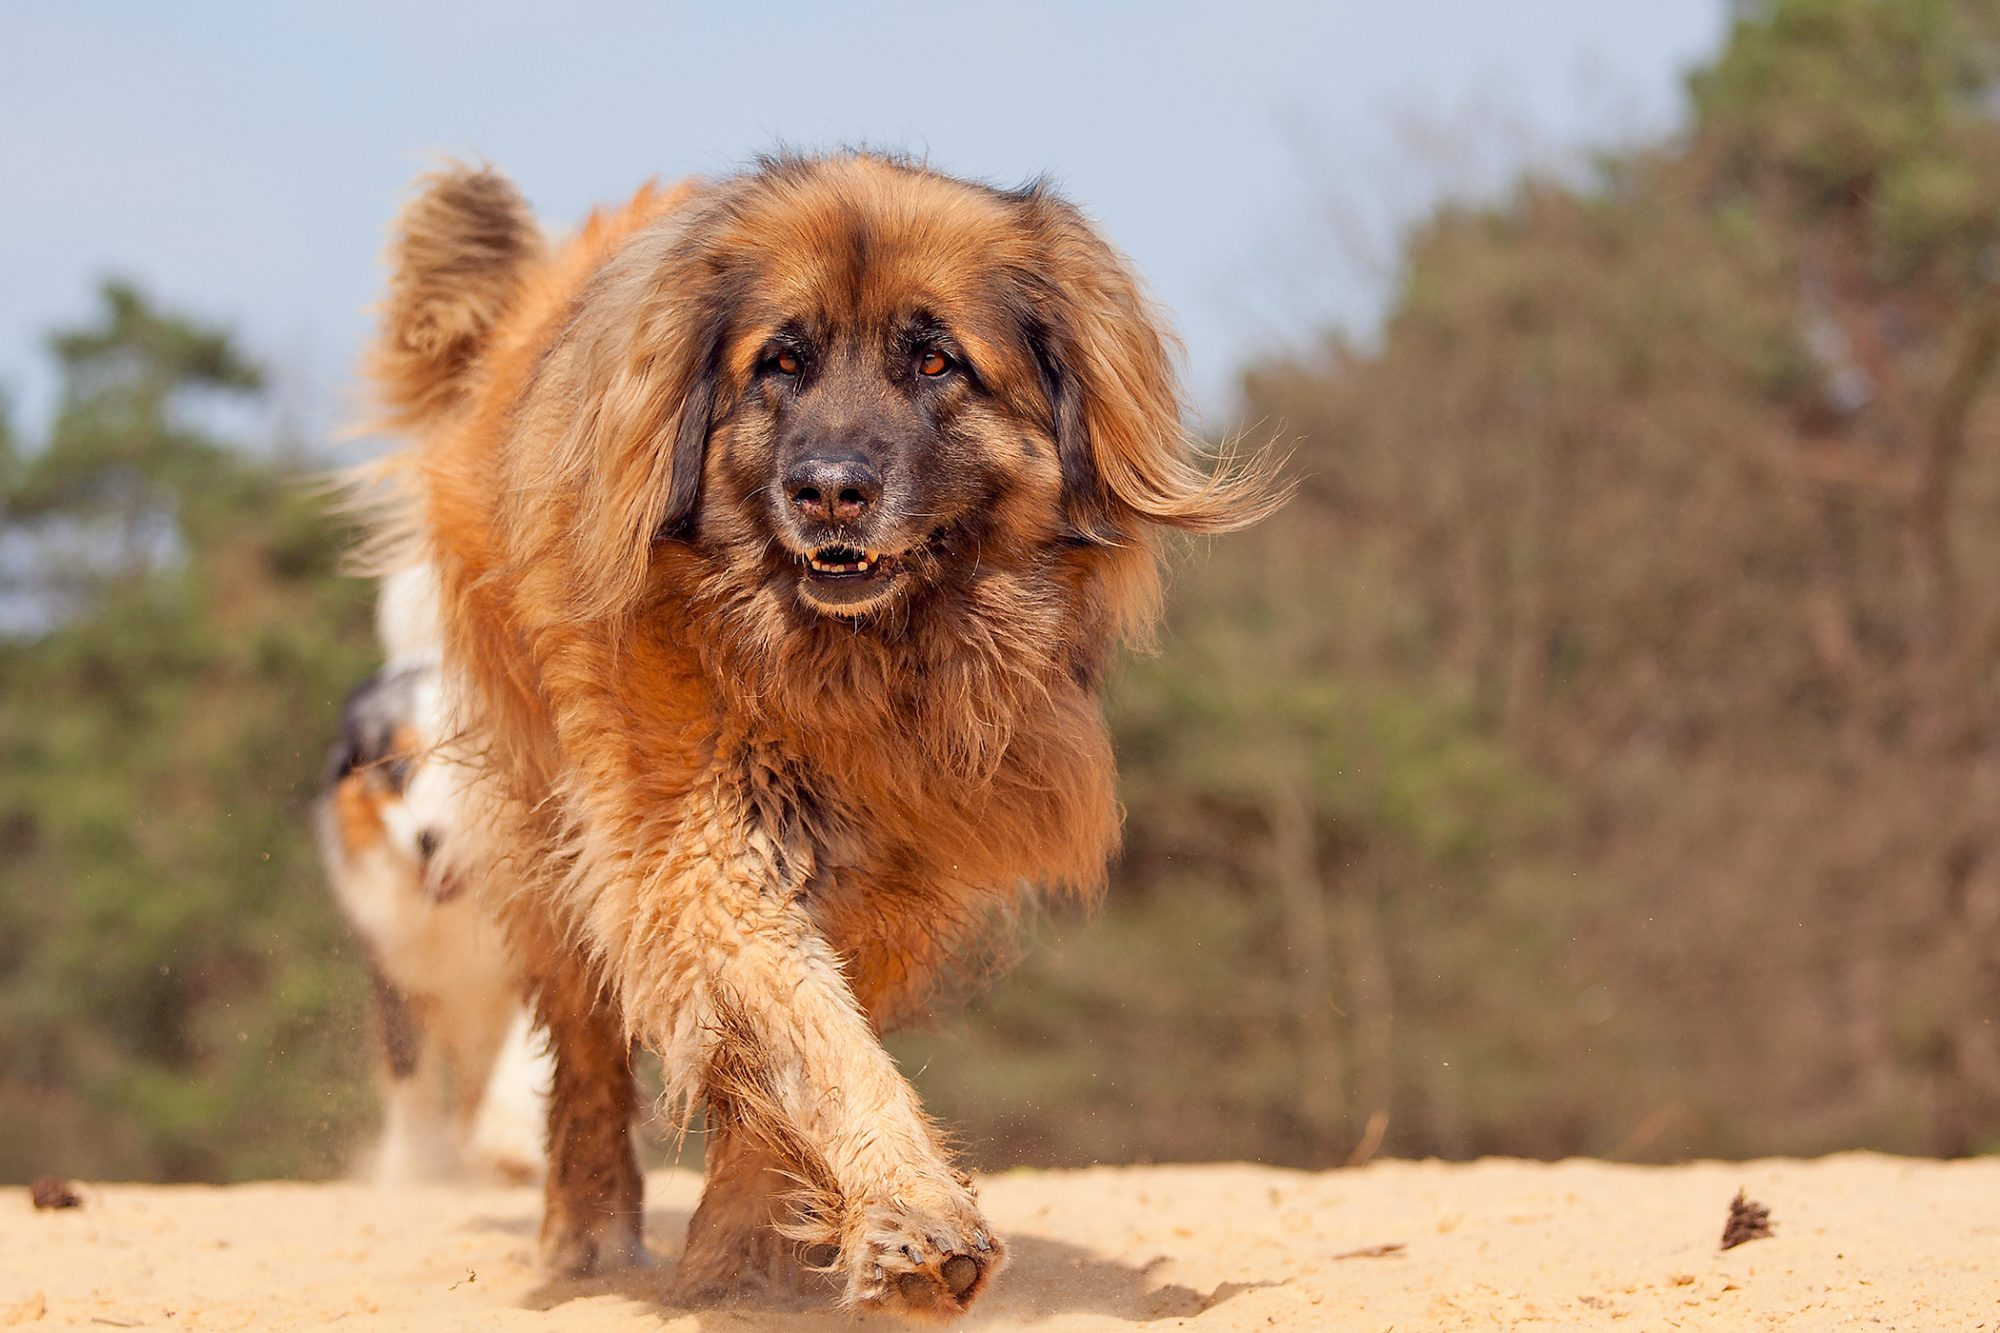 Leonberger dog walks across and